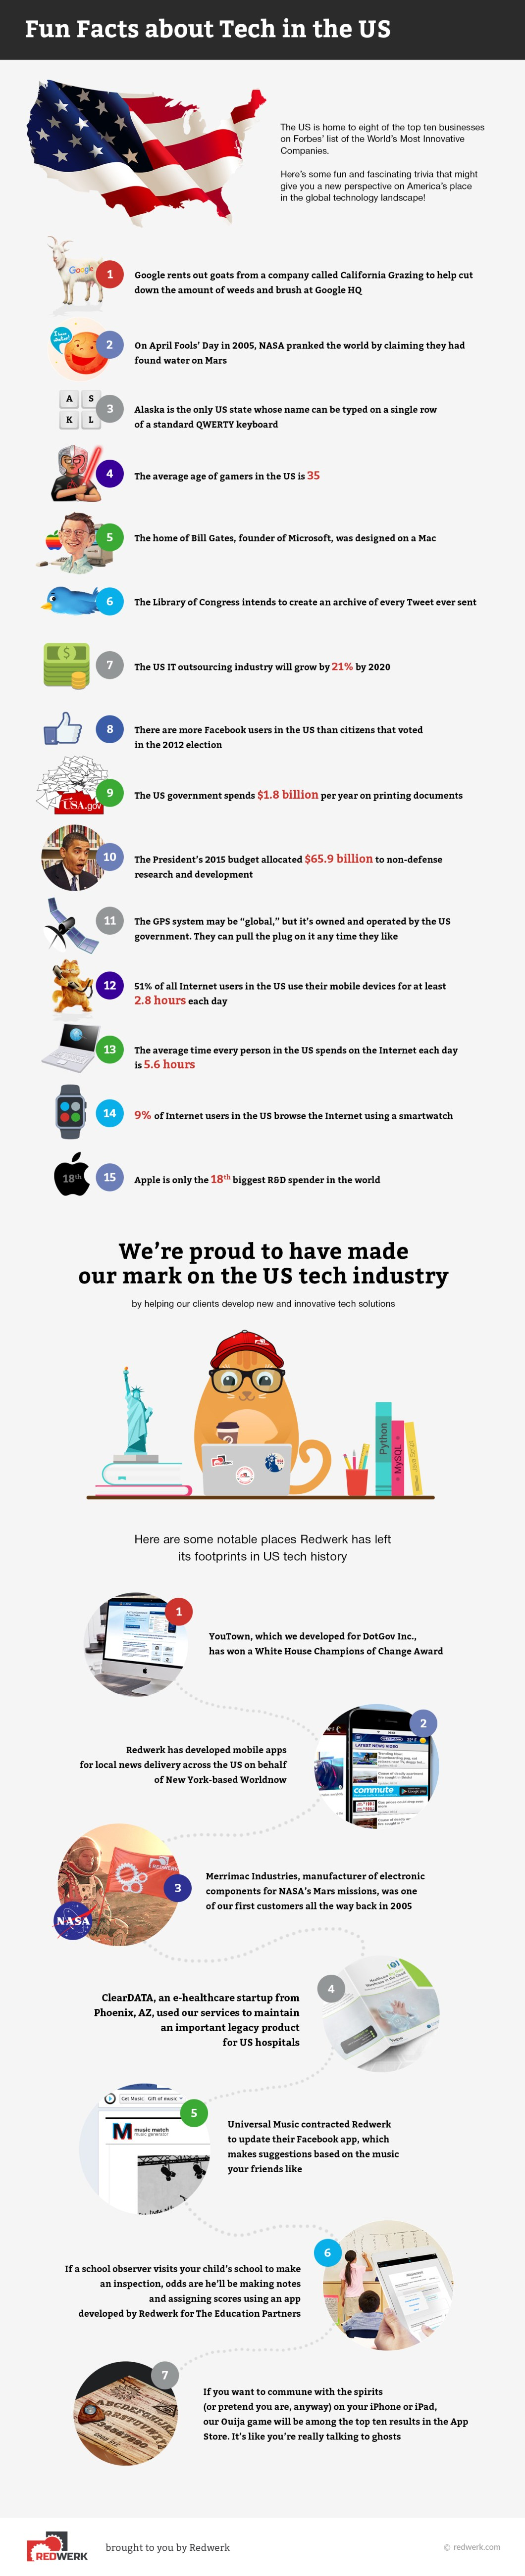 Interesting Things You Did Not Know About Tech in The US